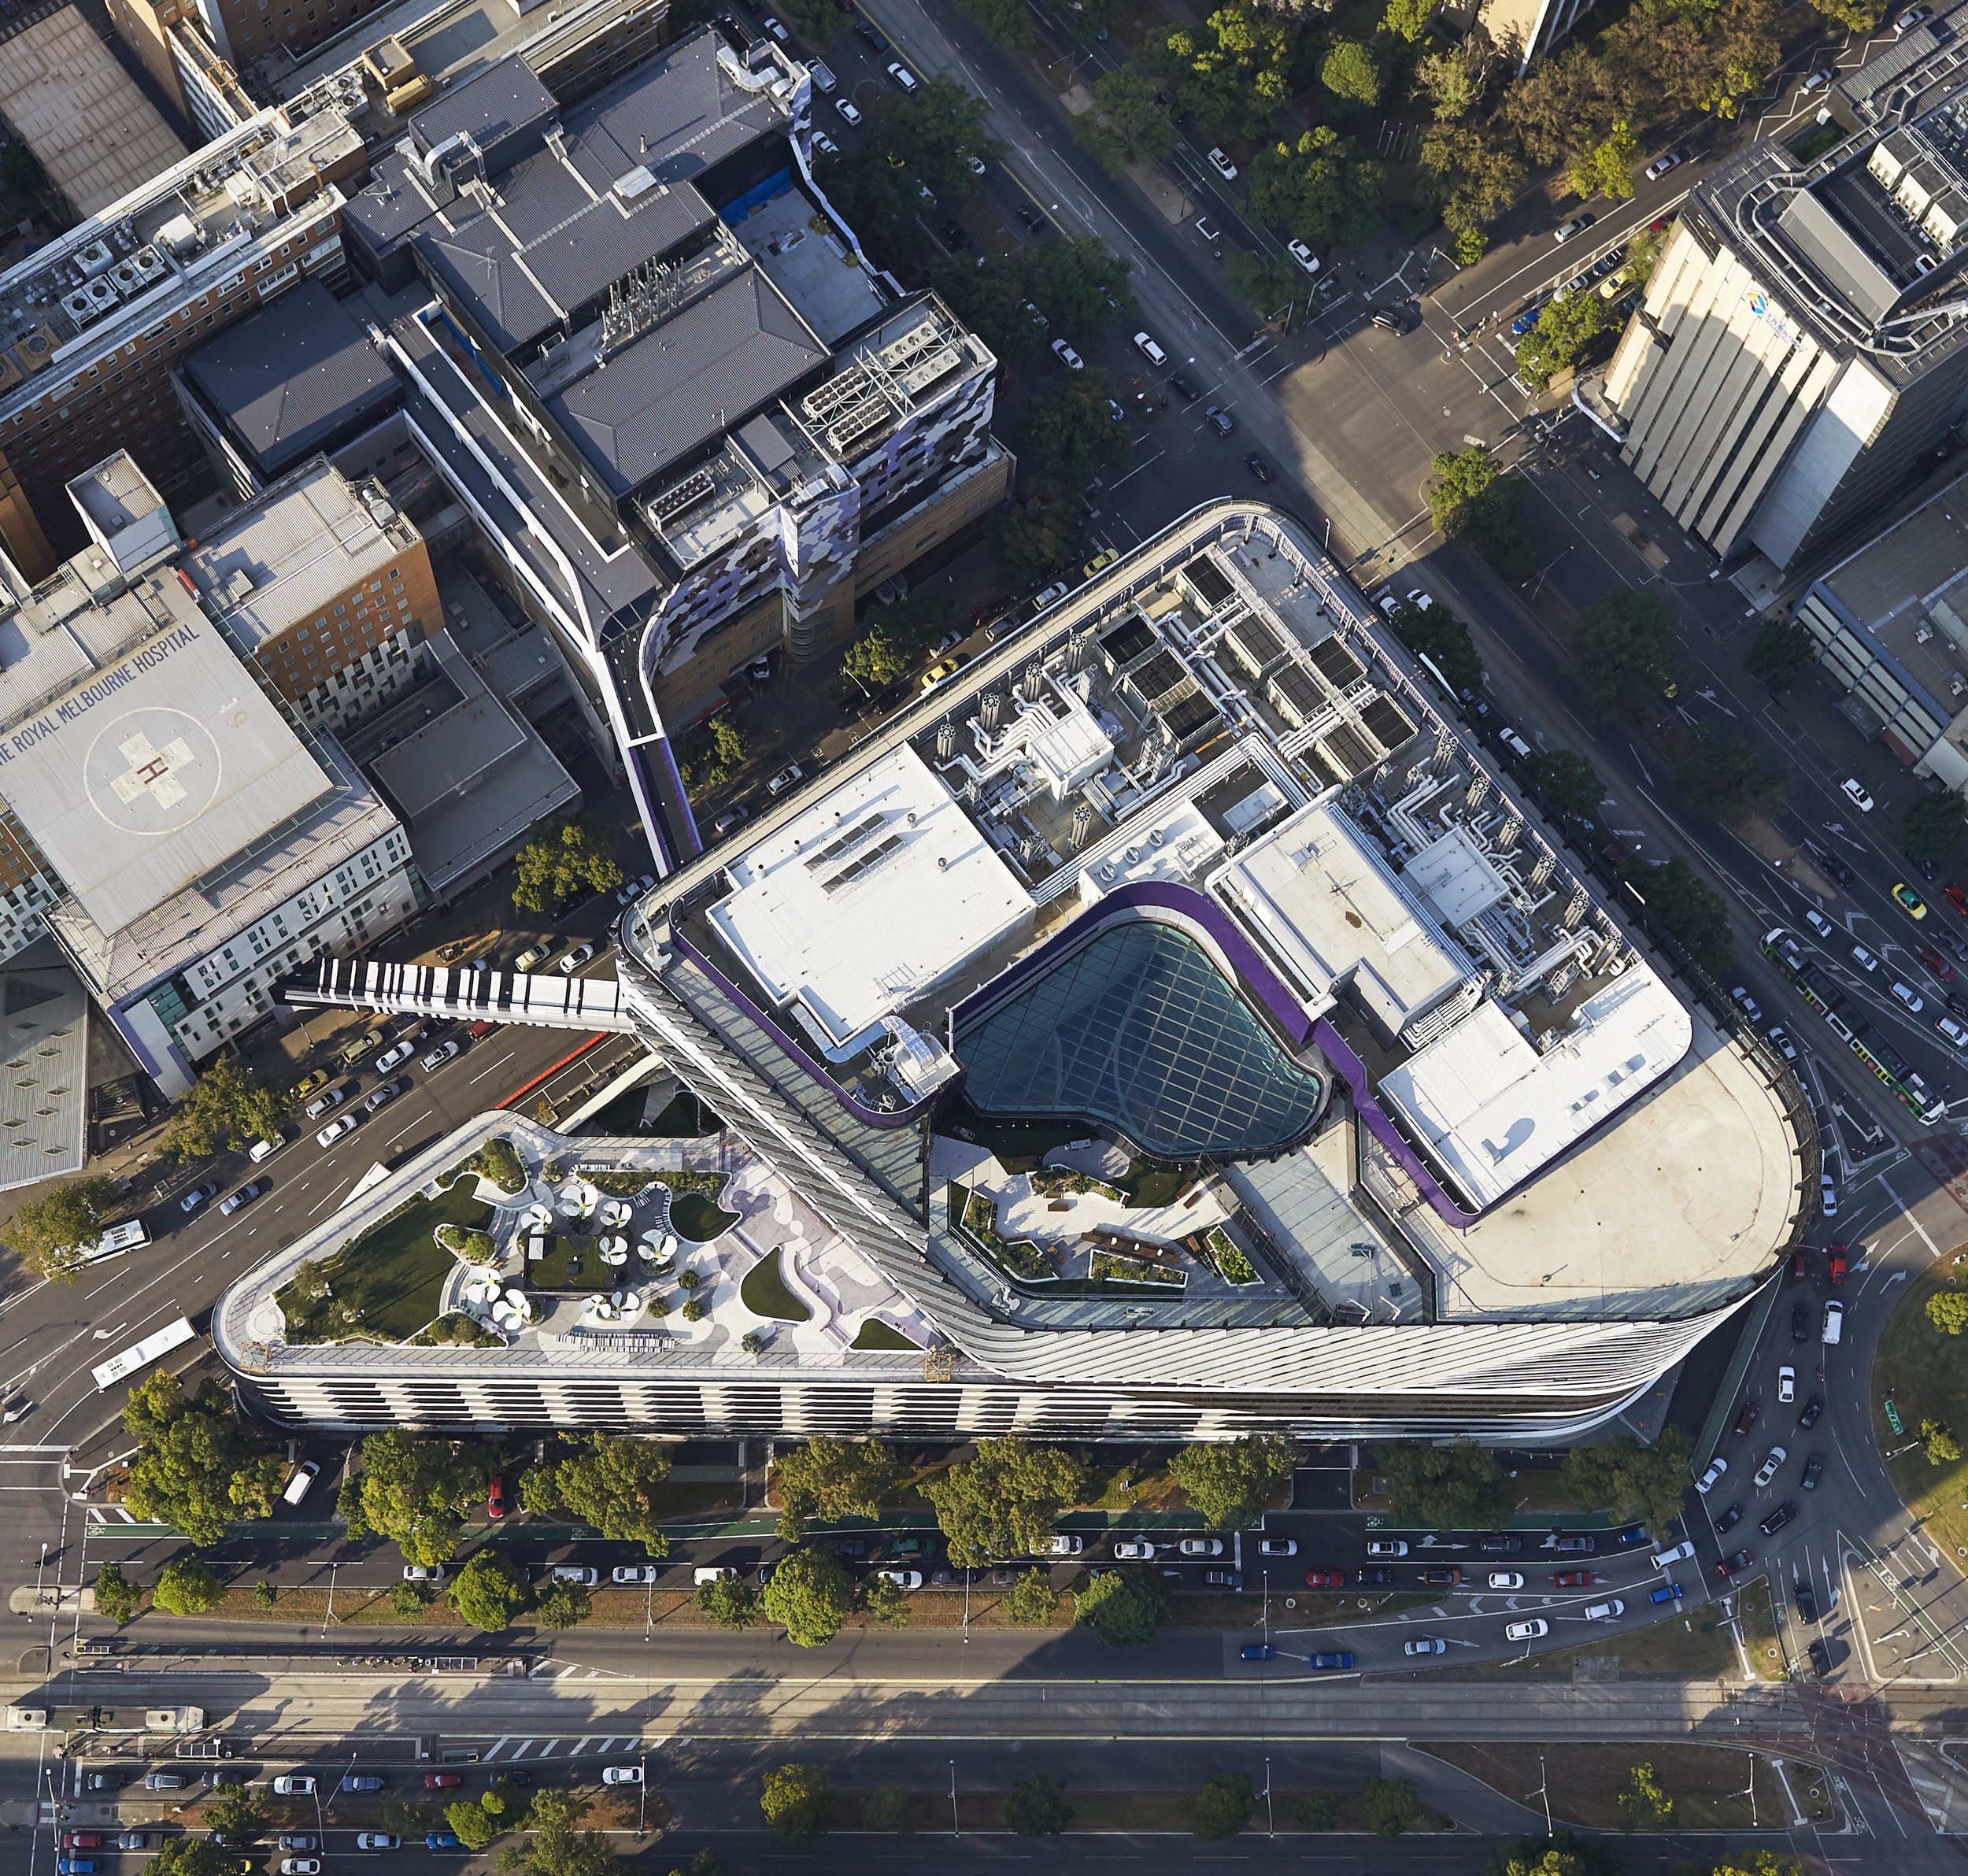 Overview of the VCCC showing the external terraces on Level 7 and 12, and the central atrium space. Photo credit: Peter Bennett